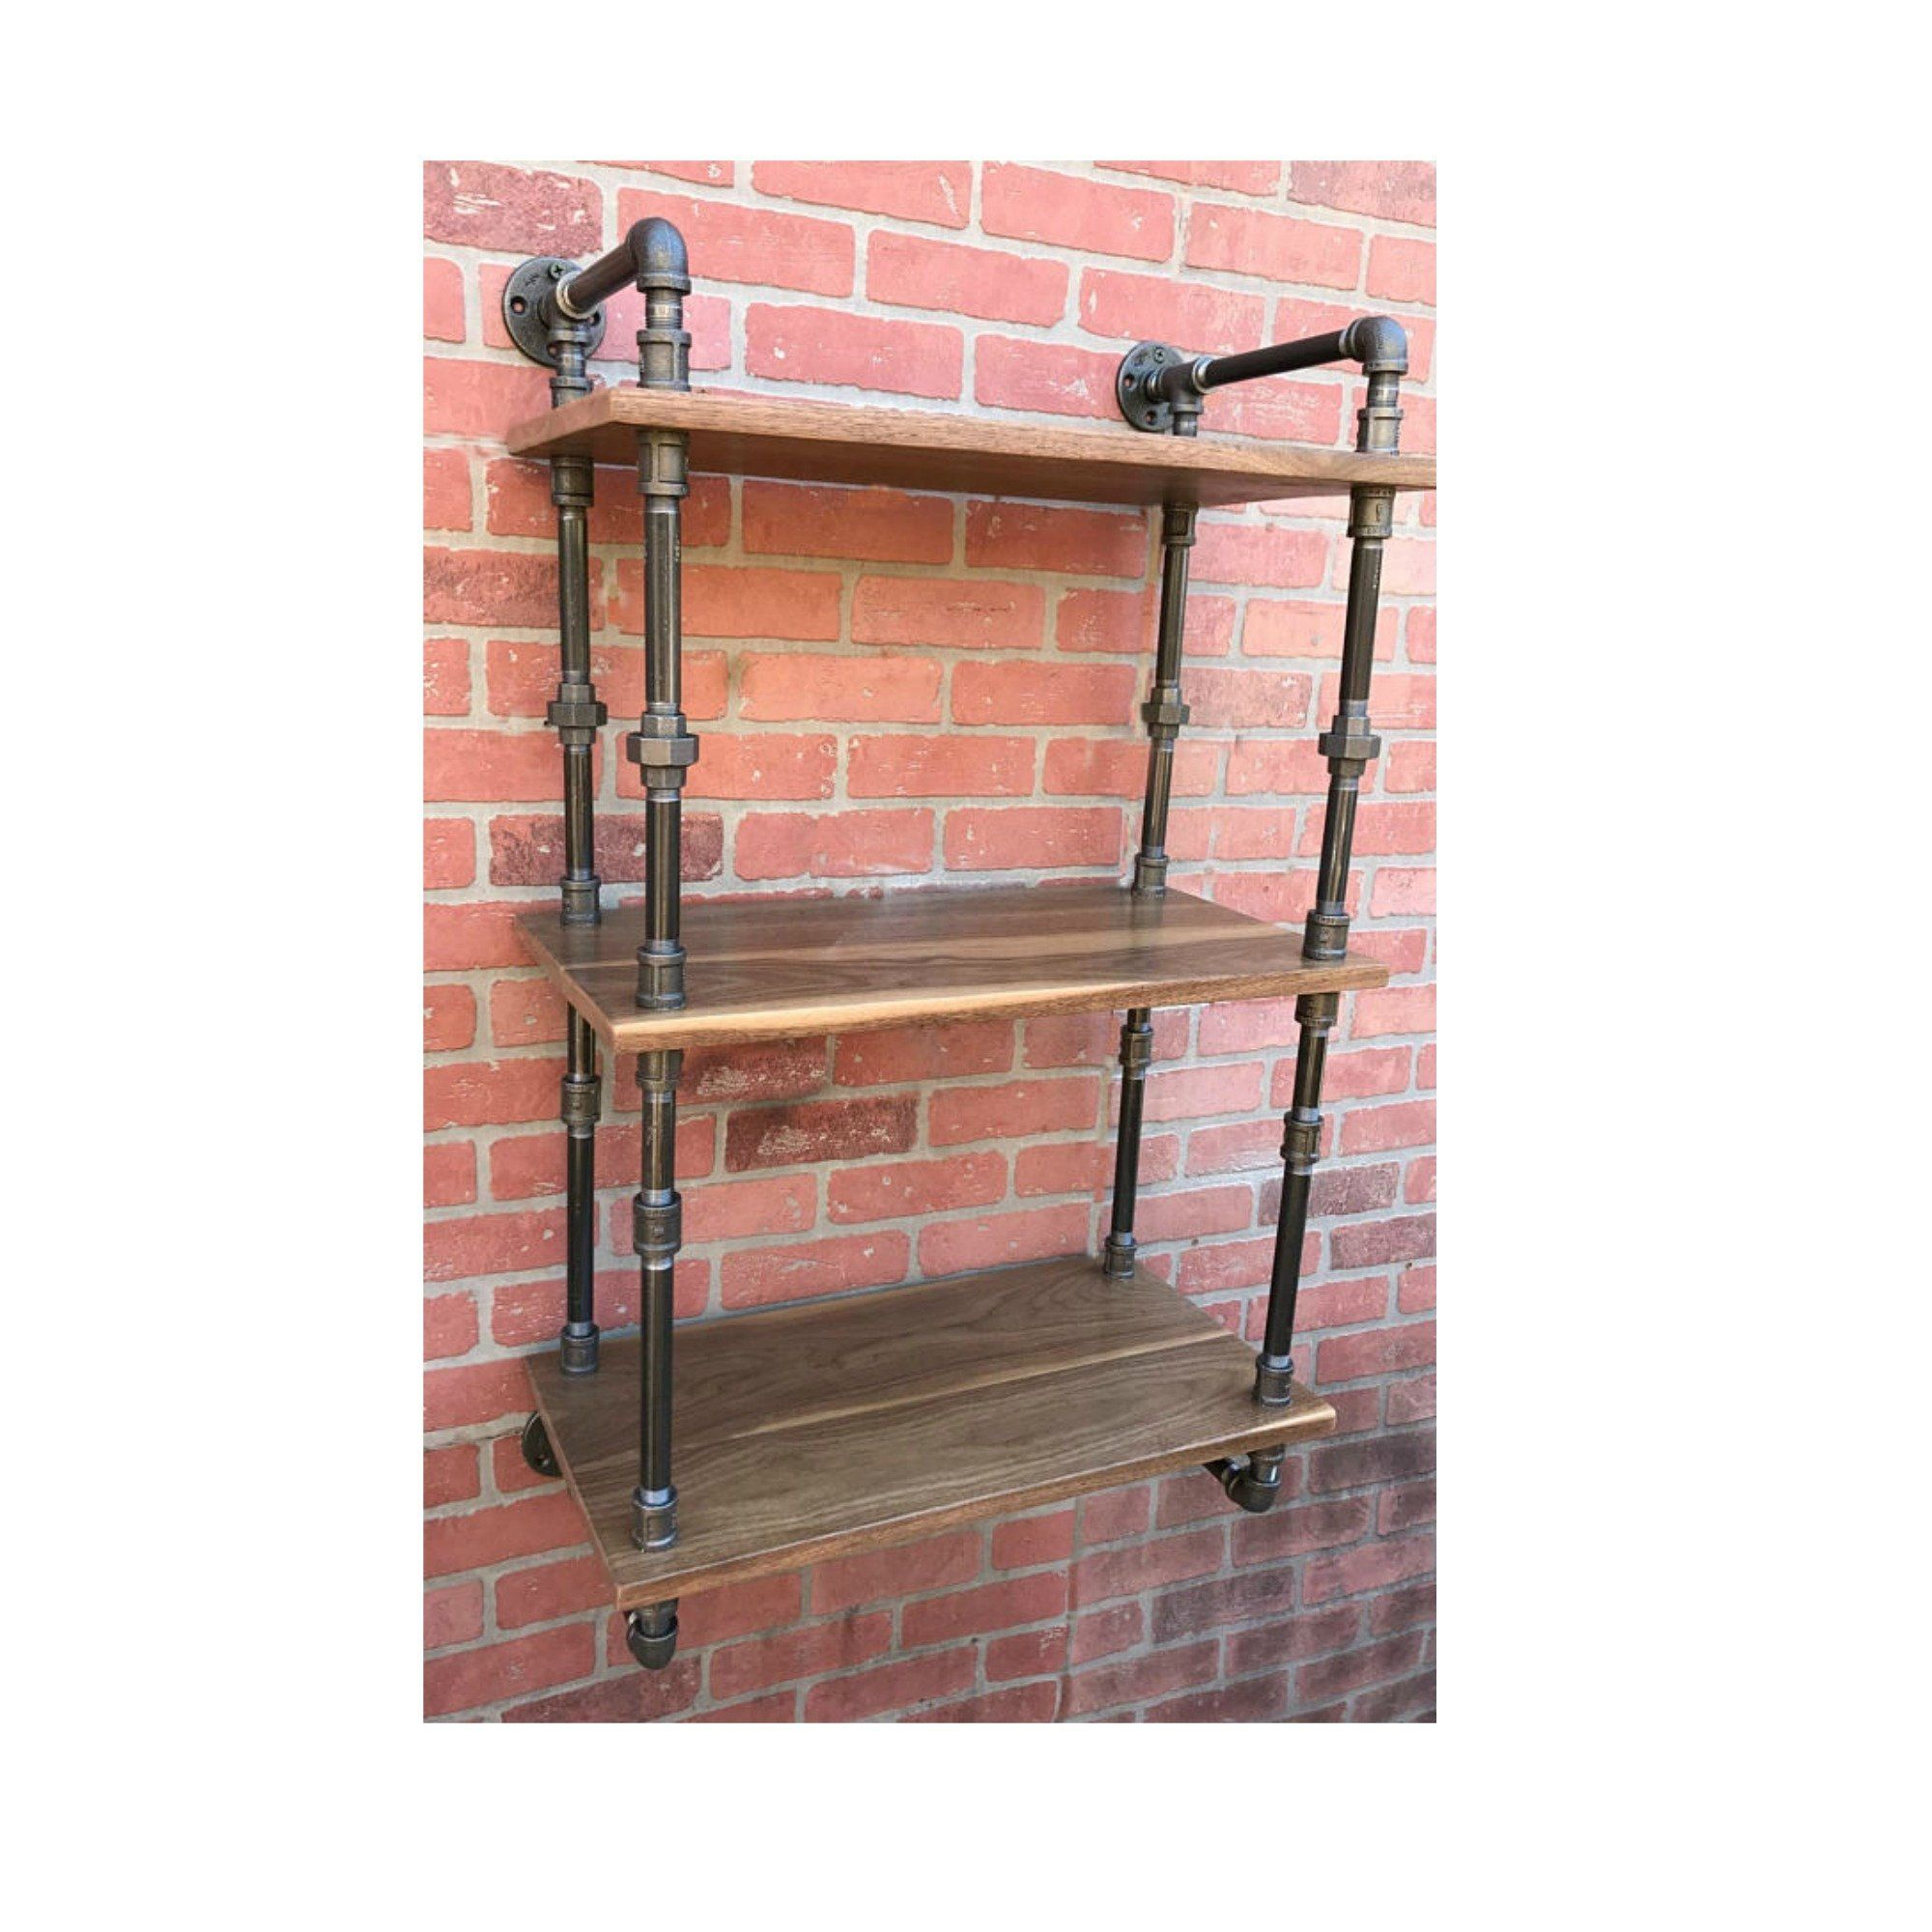 Industrial Shelf, Pipe Shelf, Shelves, Rustic Kitchen Bathroom Closet Open